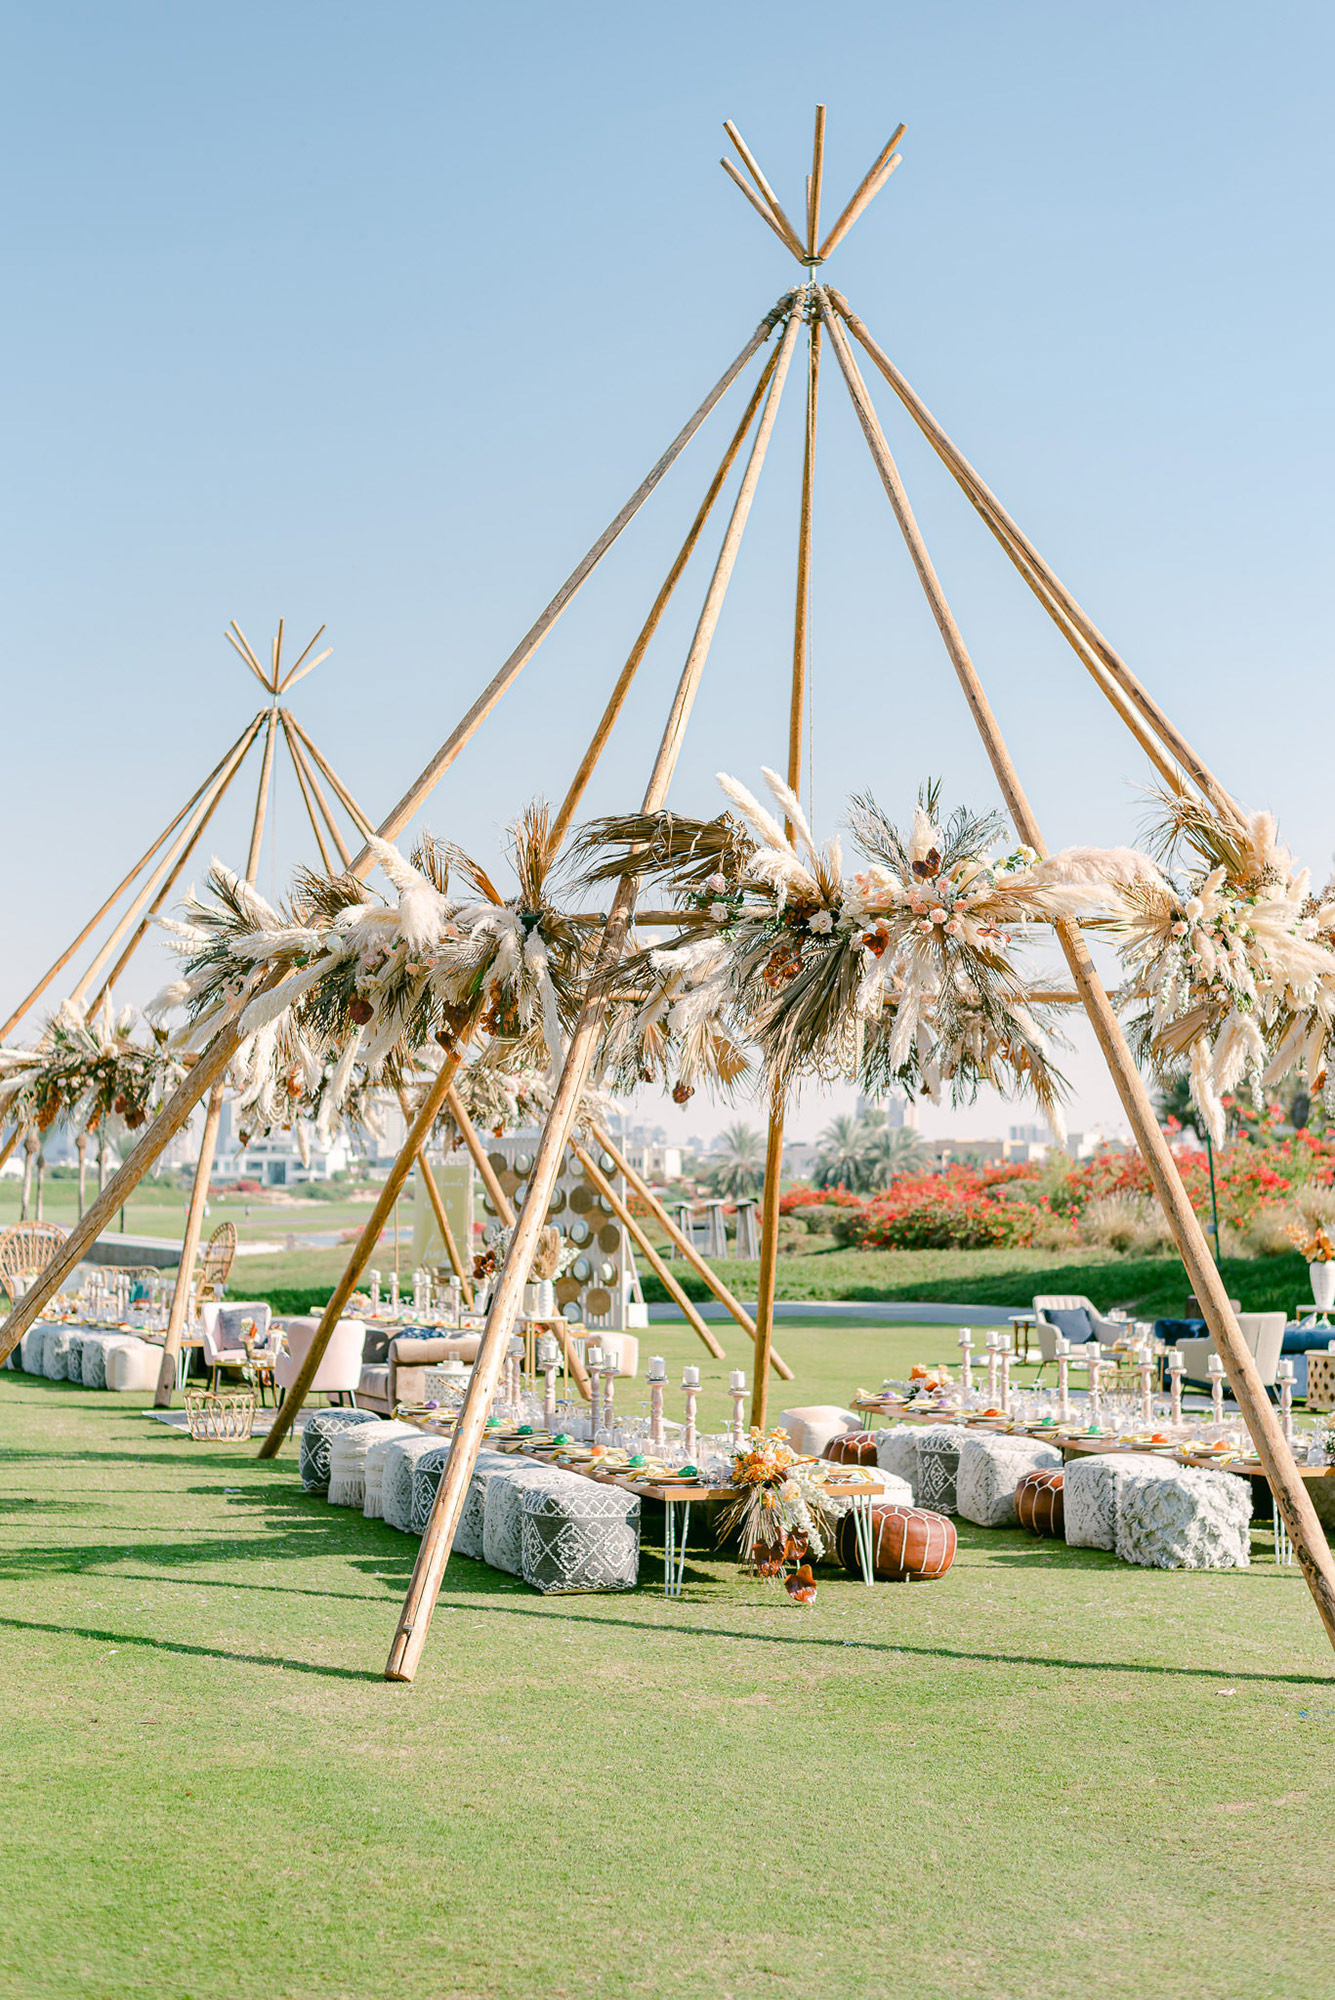 reception tables under large teepee structures